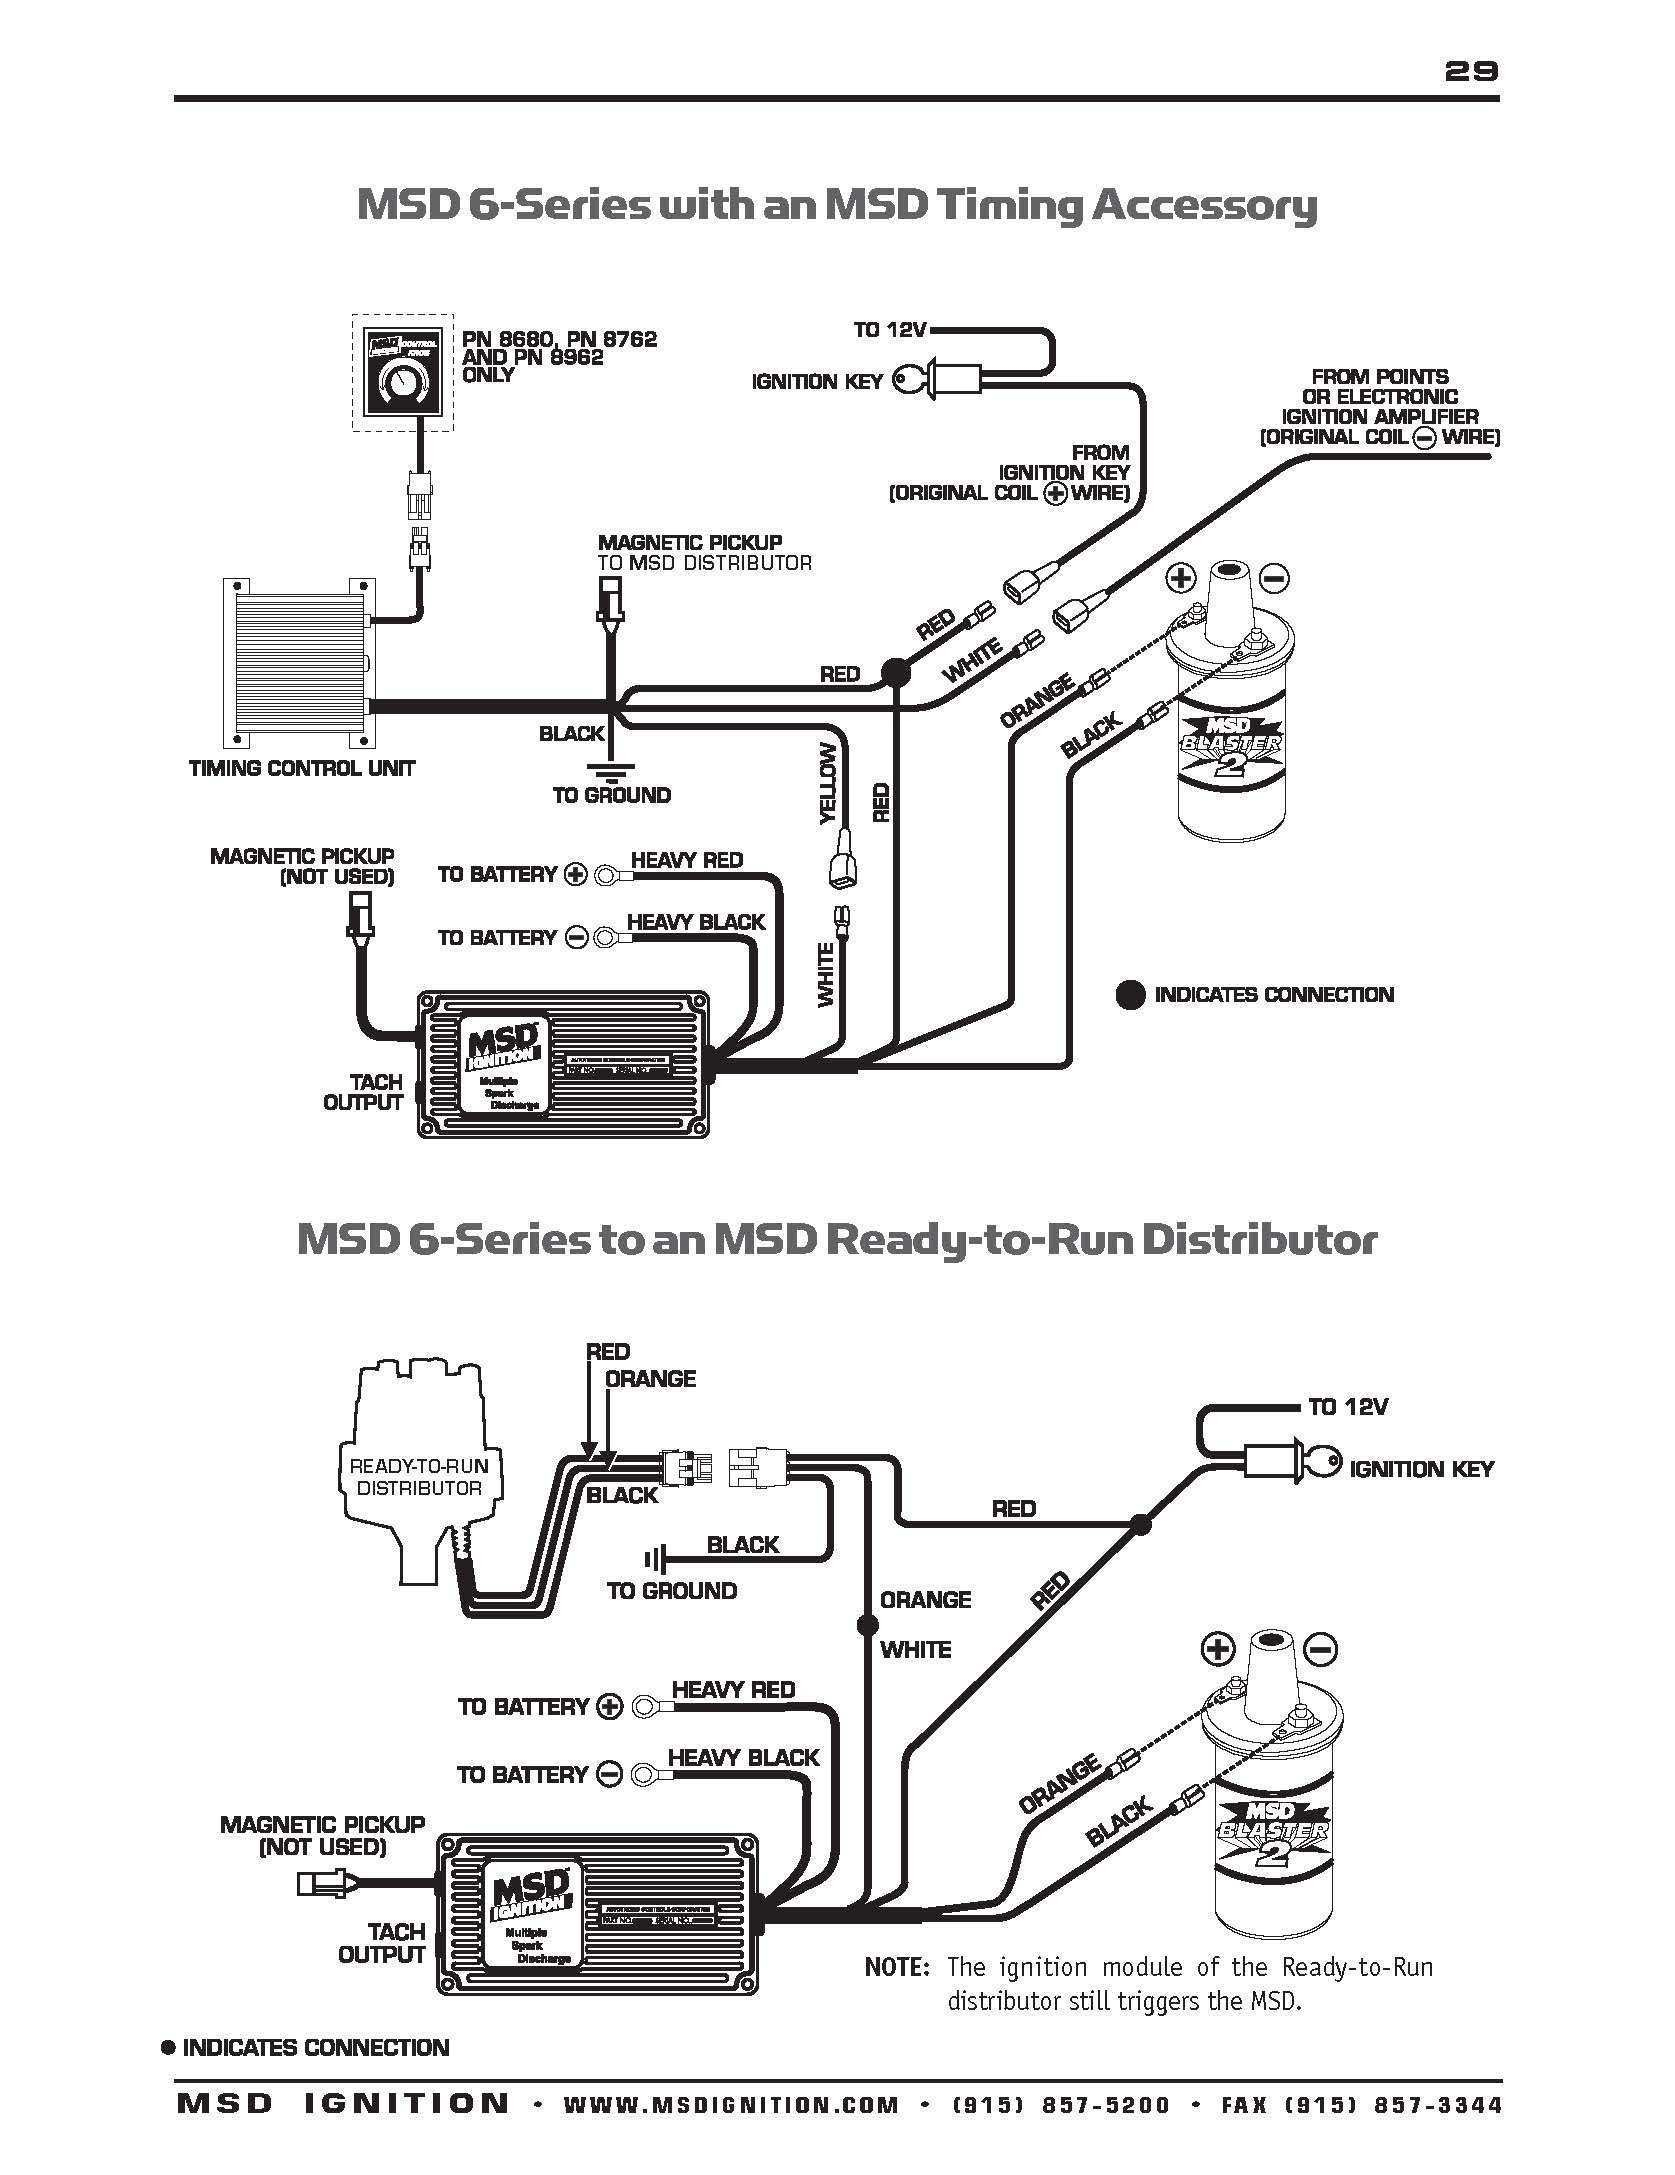 Dodge Electronic Ignition Wiring Diagram | Wiring Diagram - Dodge Electronic Ignition Wiring Diagram